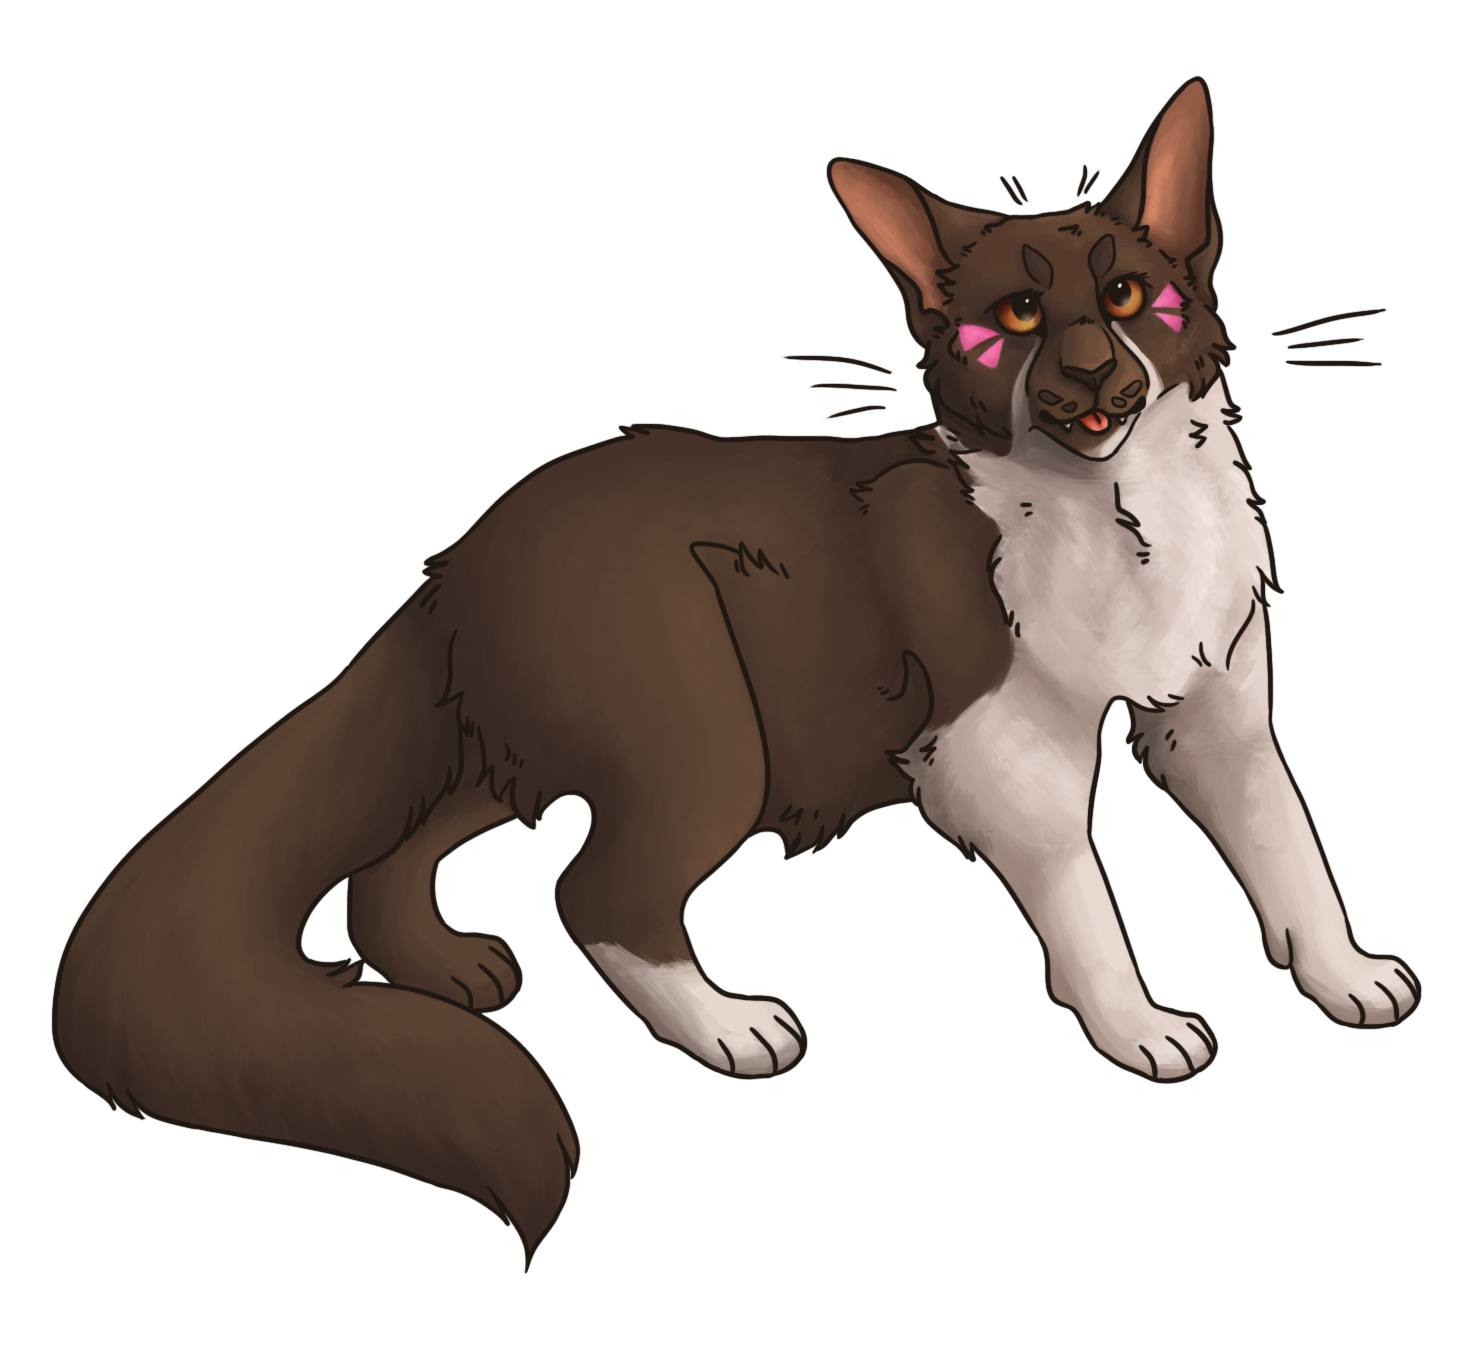 hana_for_rue_by_deerdashed-db4x138.png